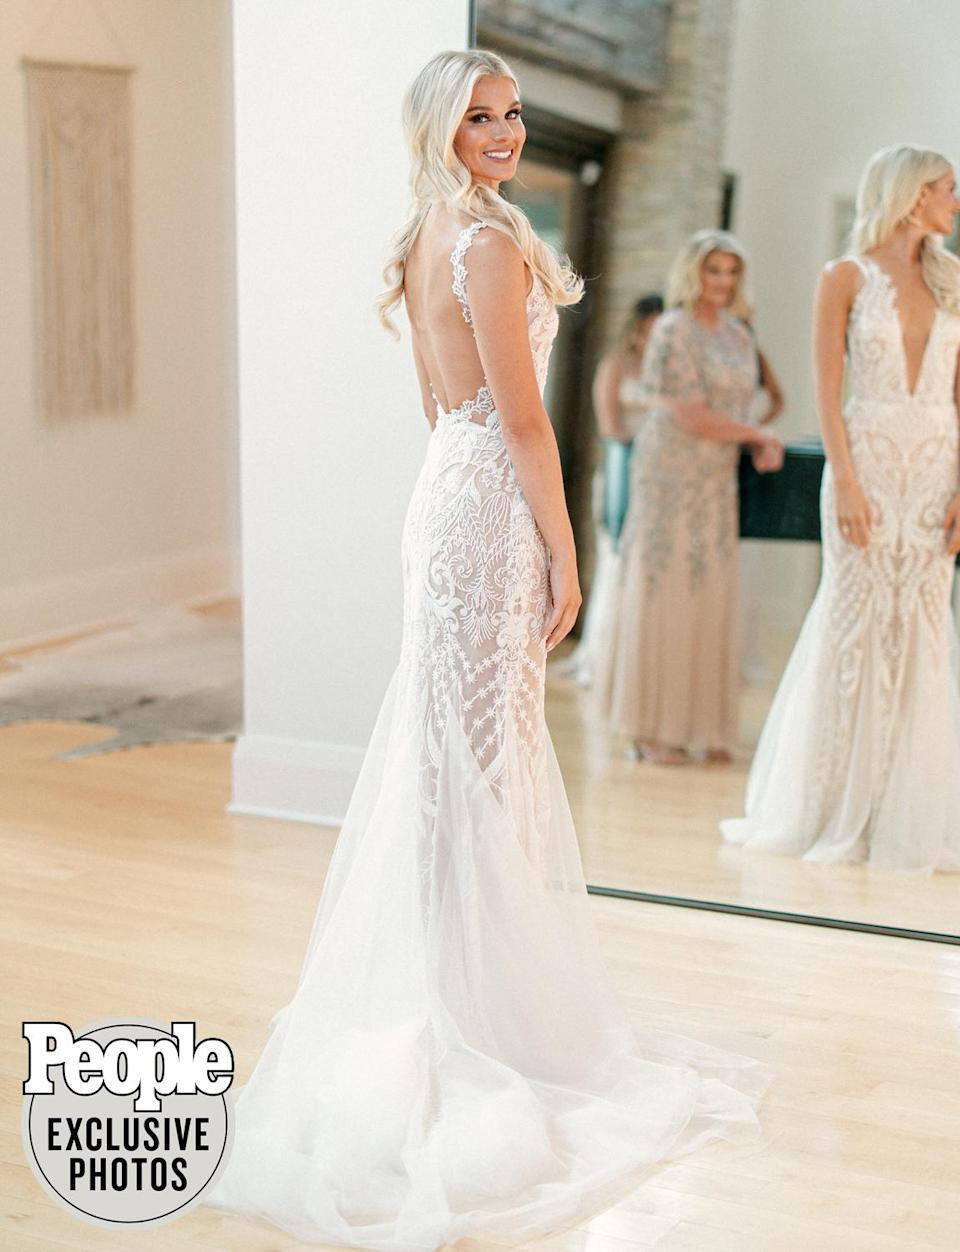 """<p>Parker wore a <a href=""""https://www.galialahav.com/"""" rel=""""nofollow noopener"""" target=""""_blank"""" data-ylk=""""slk:Galia Lahav"""" class=""""link rapid-noclick-resp"""">Galia Lahav</a> gown that she found at <a href=""""https://www.thedresstheory.com/nashville"""" rel=""""nofollow noopener"""" target=""""_blank"""" data-ylk=""""slk:The Dress Theory Nashville"""" class=""""link rapid-noclick-resp"""">The Dress Theory Nashville</a> much quicker than she initially expected.</p> <p>""""It was probably the third dress that I tried on, and I knew it immediately. I had five girls [including bridesmaids <a href=""""https://people.com/country/dan-smyers-marries-abby-law/"""" rel=""""nofollow noopener"""" target=""""_blank"""" data-ylk=""""slk:Abby Smyers"""" class=""""link rapid-noclick-resp"""">Abby Smyers</a> and <em>Bobby Bones Show</em> personality <a href=""""http://radioamy.com/"""" rel=""""nofollow noopener"""" target=""""_blank"""" data-ylk=""""slk:Amy Brown"""" class=""""link rapid-noclick-resp"""">Amy Brown</a>] with me and three of them started crying! It was the absolute opposite of what I thought that I wanted from the start — completely different,"""" she tells PEOPLE. </p> <p>Parker finished her bridal look with hair by <a href=""""https://www.instagram.com/sarahcklein/"""" rel=""""nofollow noopener"""" target=""""_blank"""" data-ylk=""""slk:Sarah Klein"""" class=""""link rapid-noclick-resp"""">Sarah Klein</a> and makeup by <a href=""""https://www.marzcollins.com/"""" rel=""""nofollow noopener"""" target=""""_blank"""" data-ylk=""""slk:Marz Collins"""" class=""""link rapid-noclick-resp"""">Marz Collins</a>.</p>"""